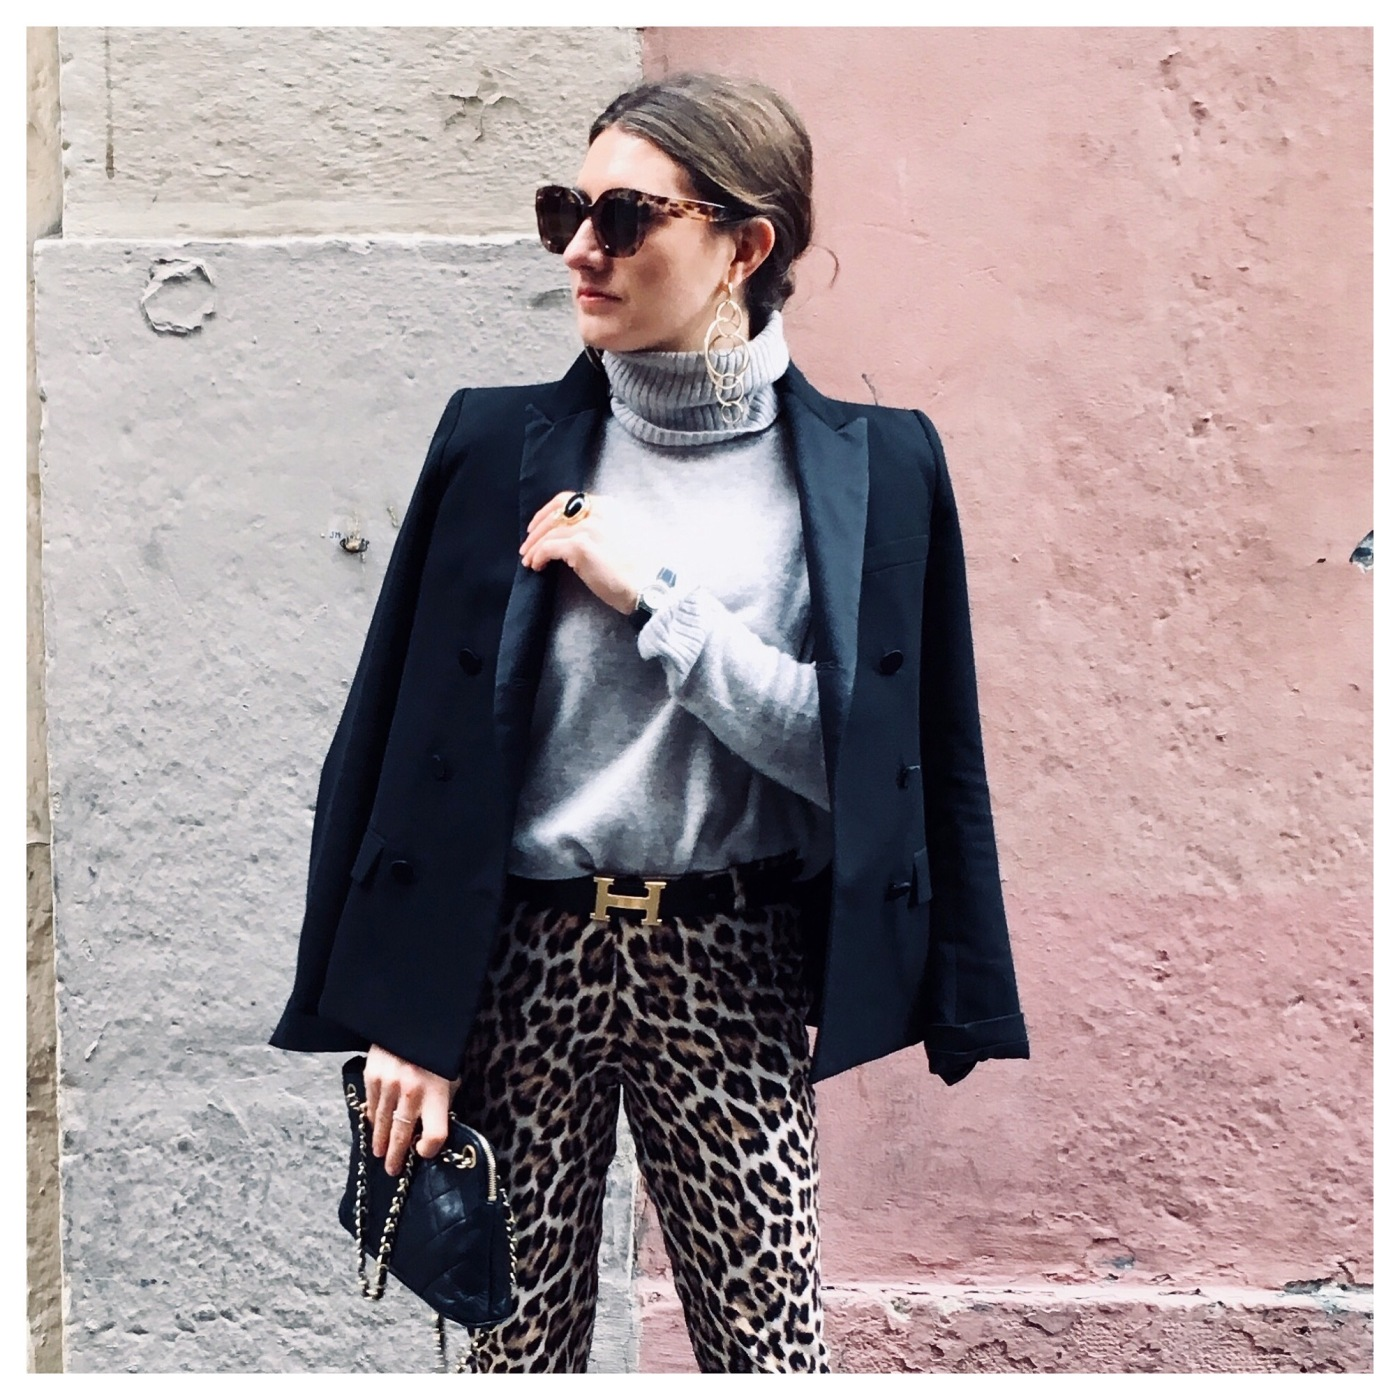 Mathilde G fashion blogger streetstyle